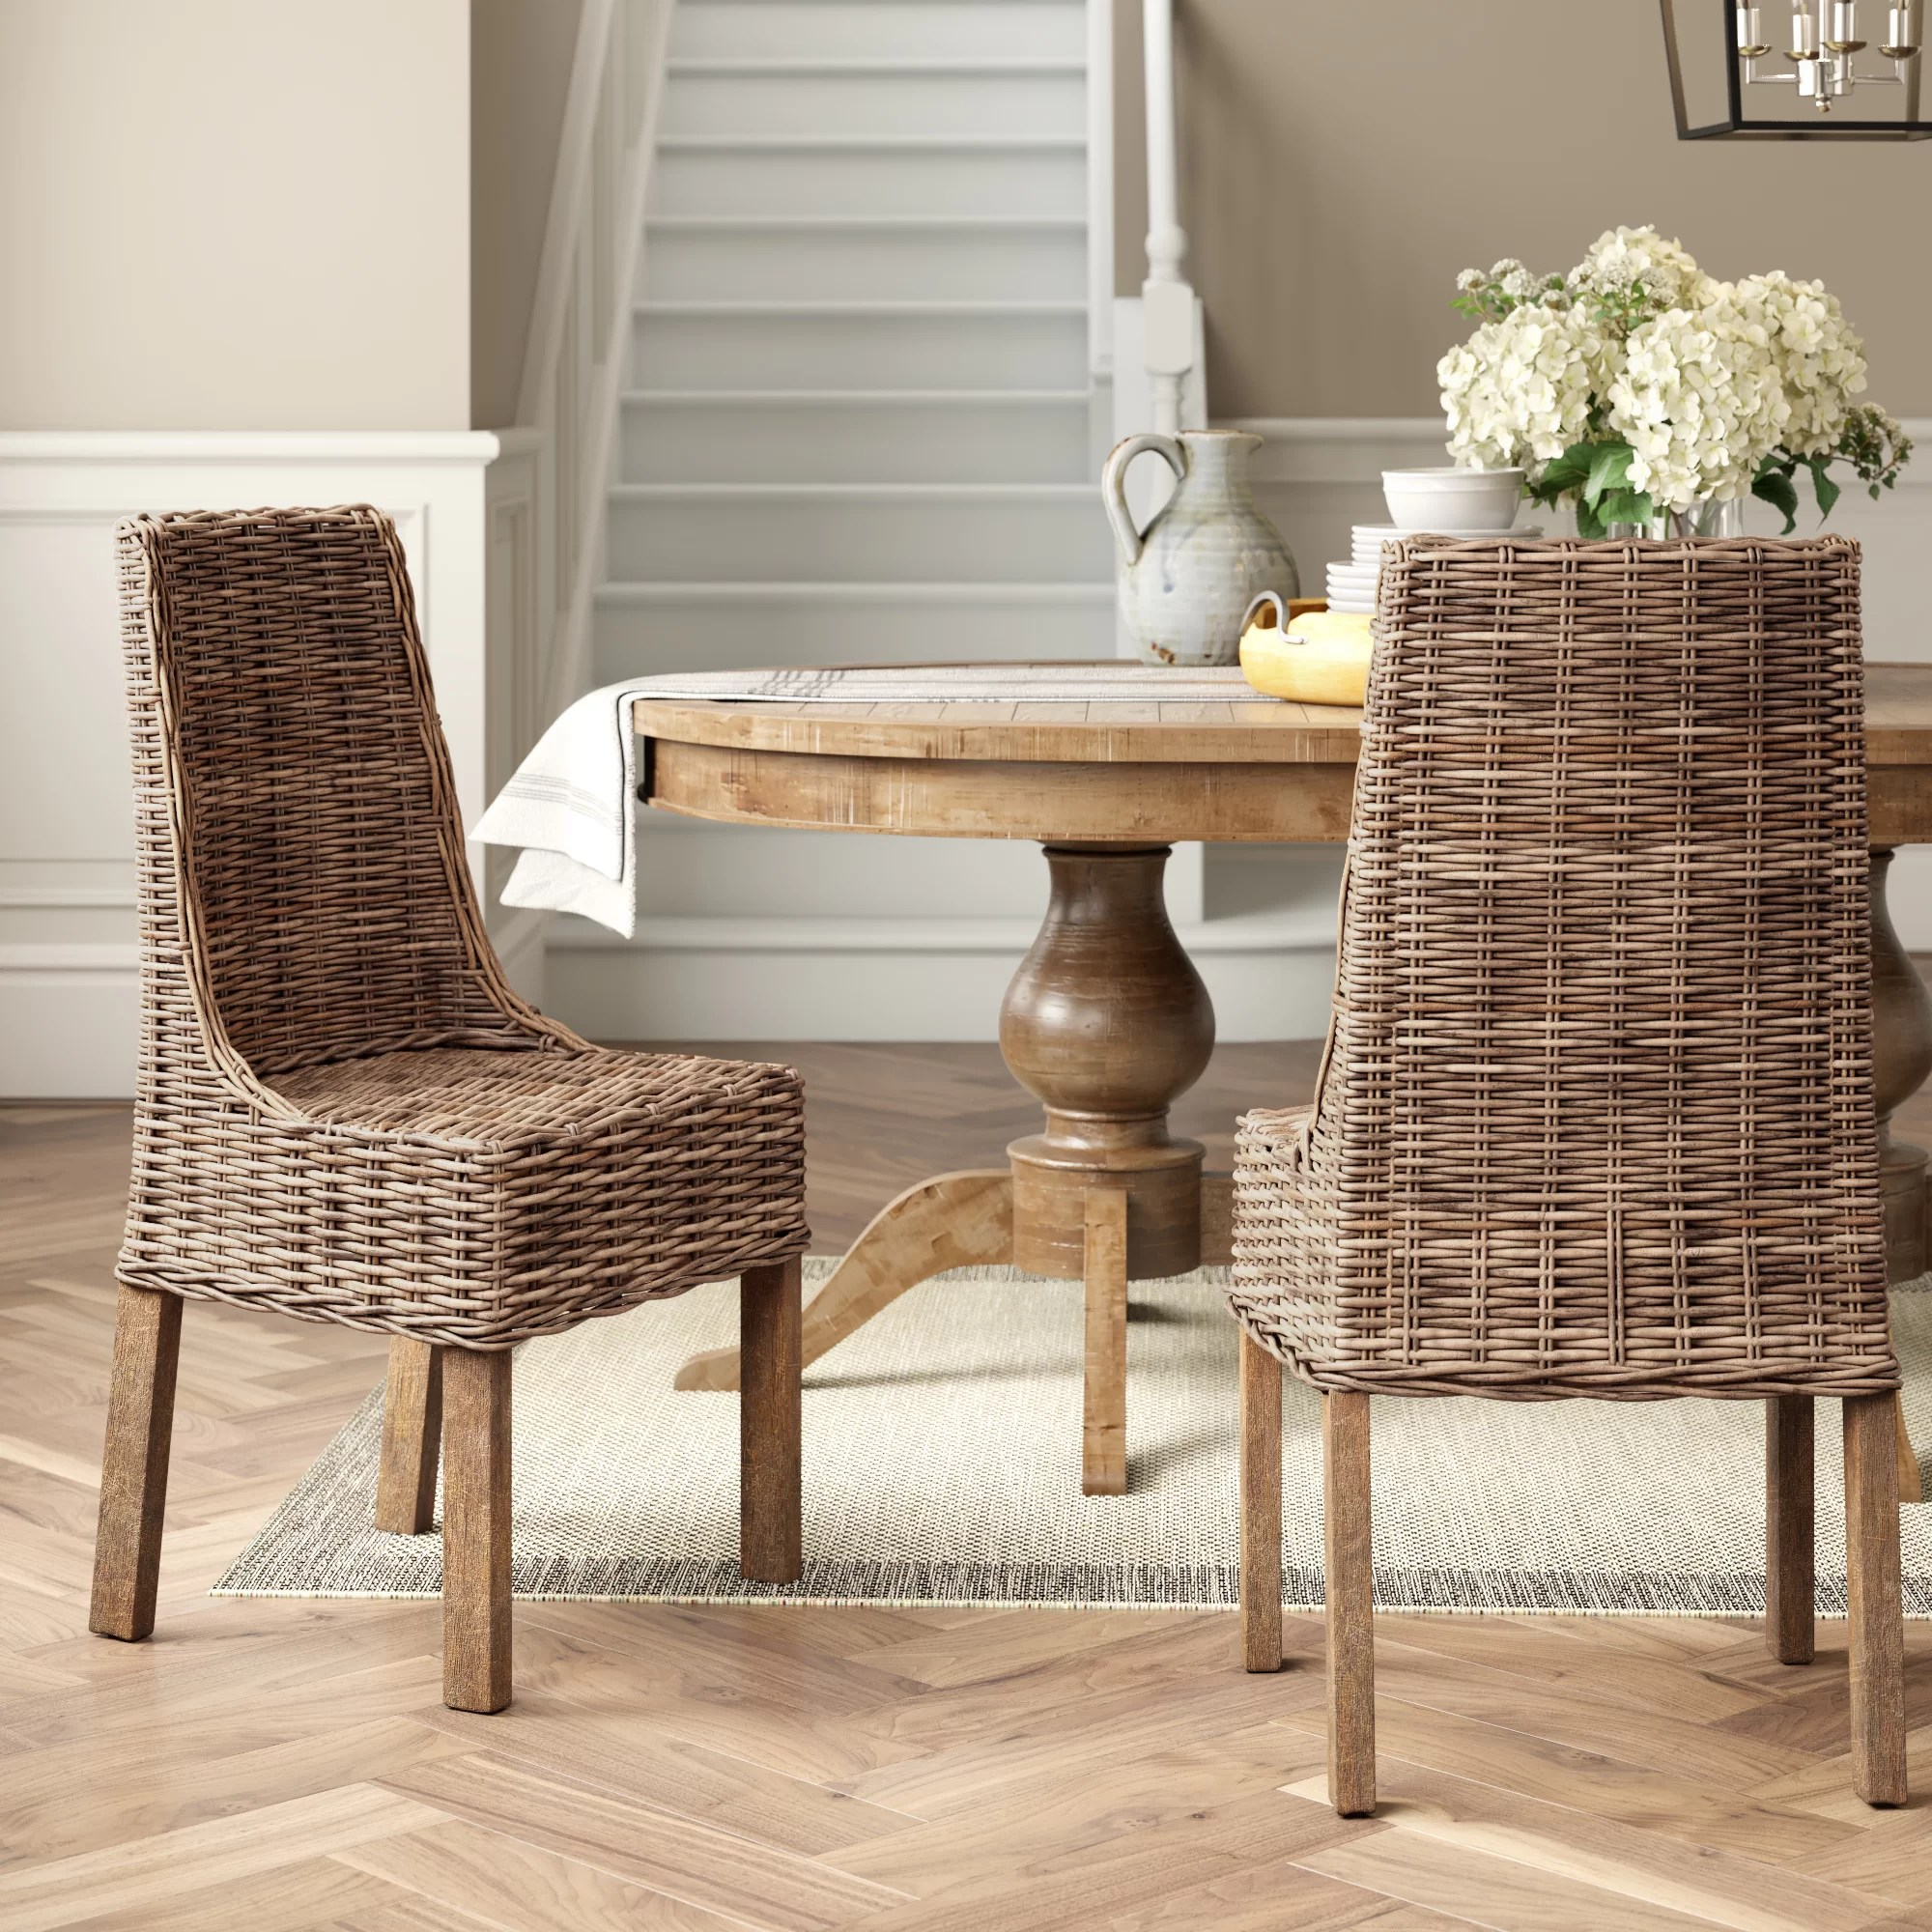 Gray Wicker Rattan Kitchen Dining Chairs You Ll Love In 2021 Wayfair